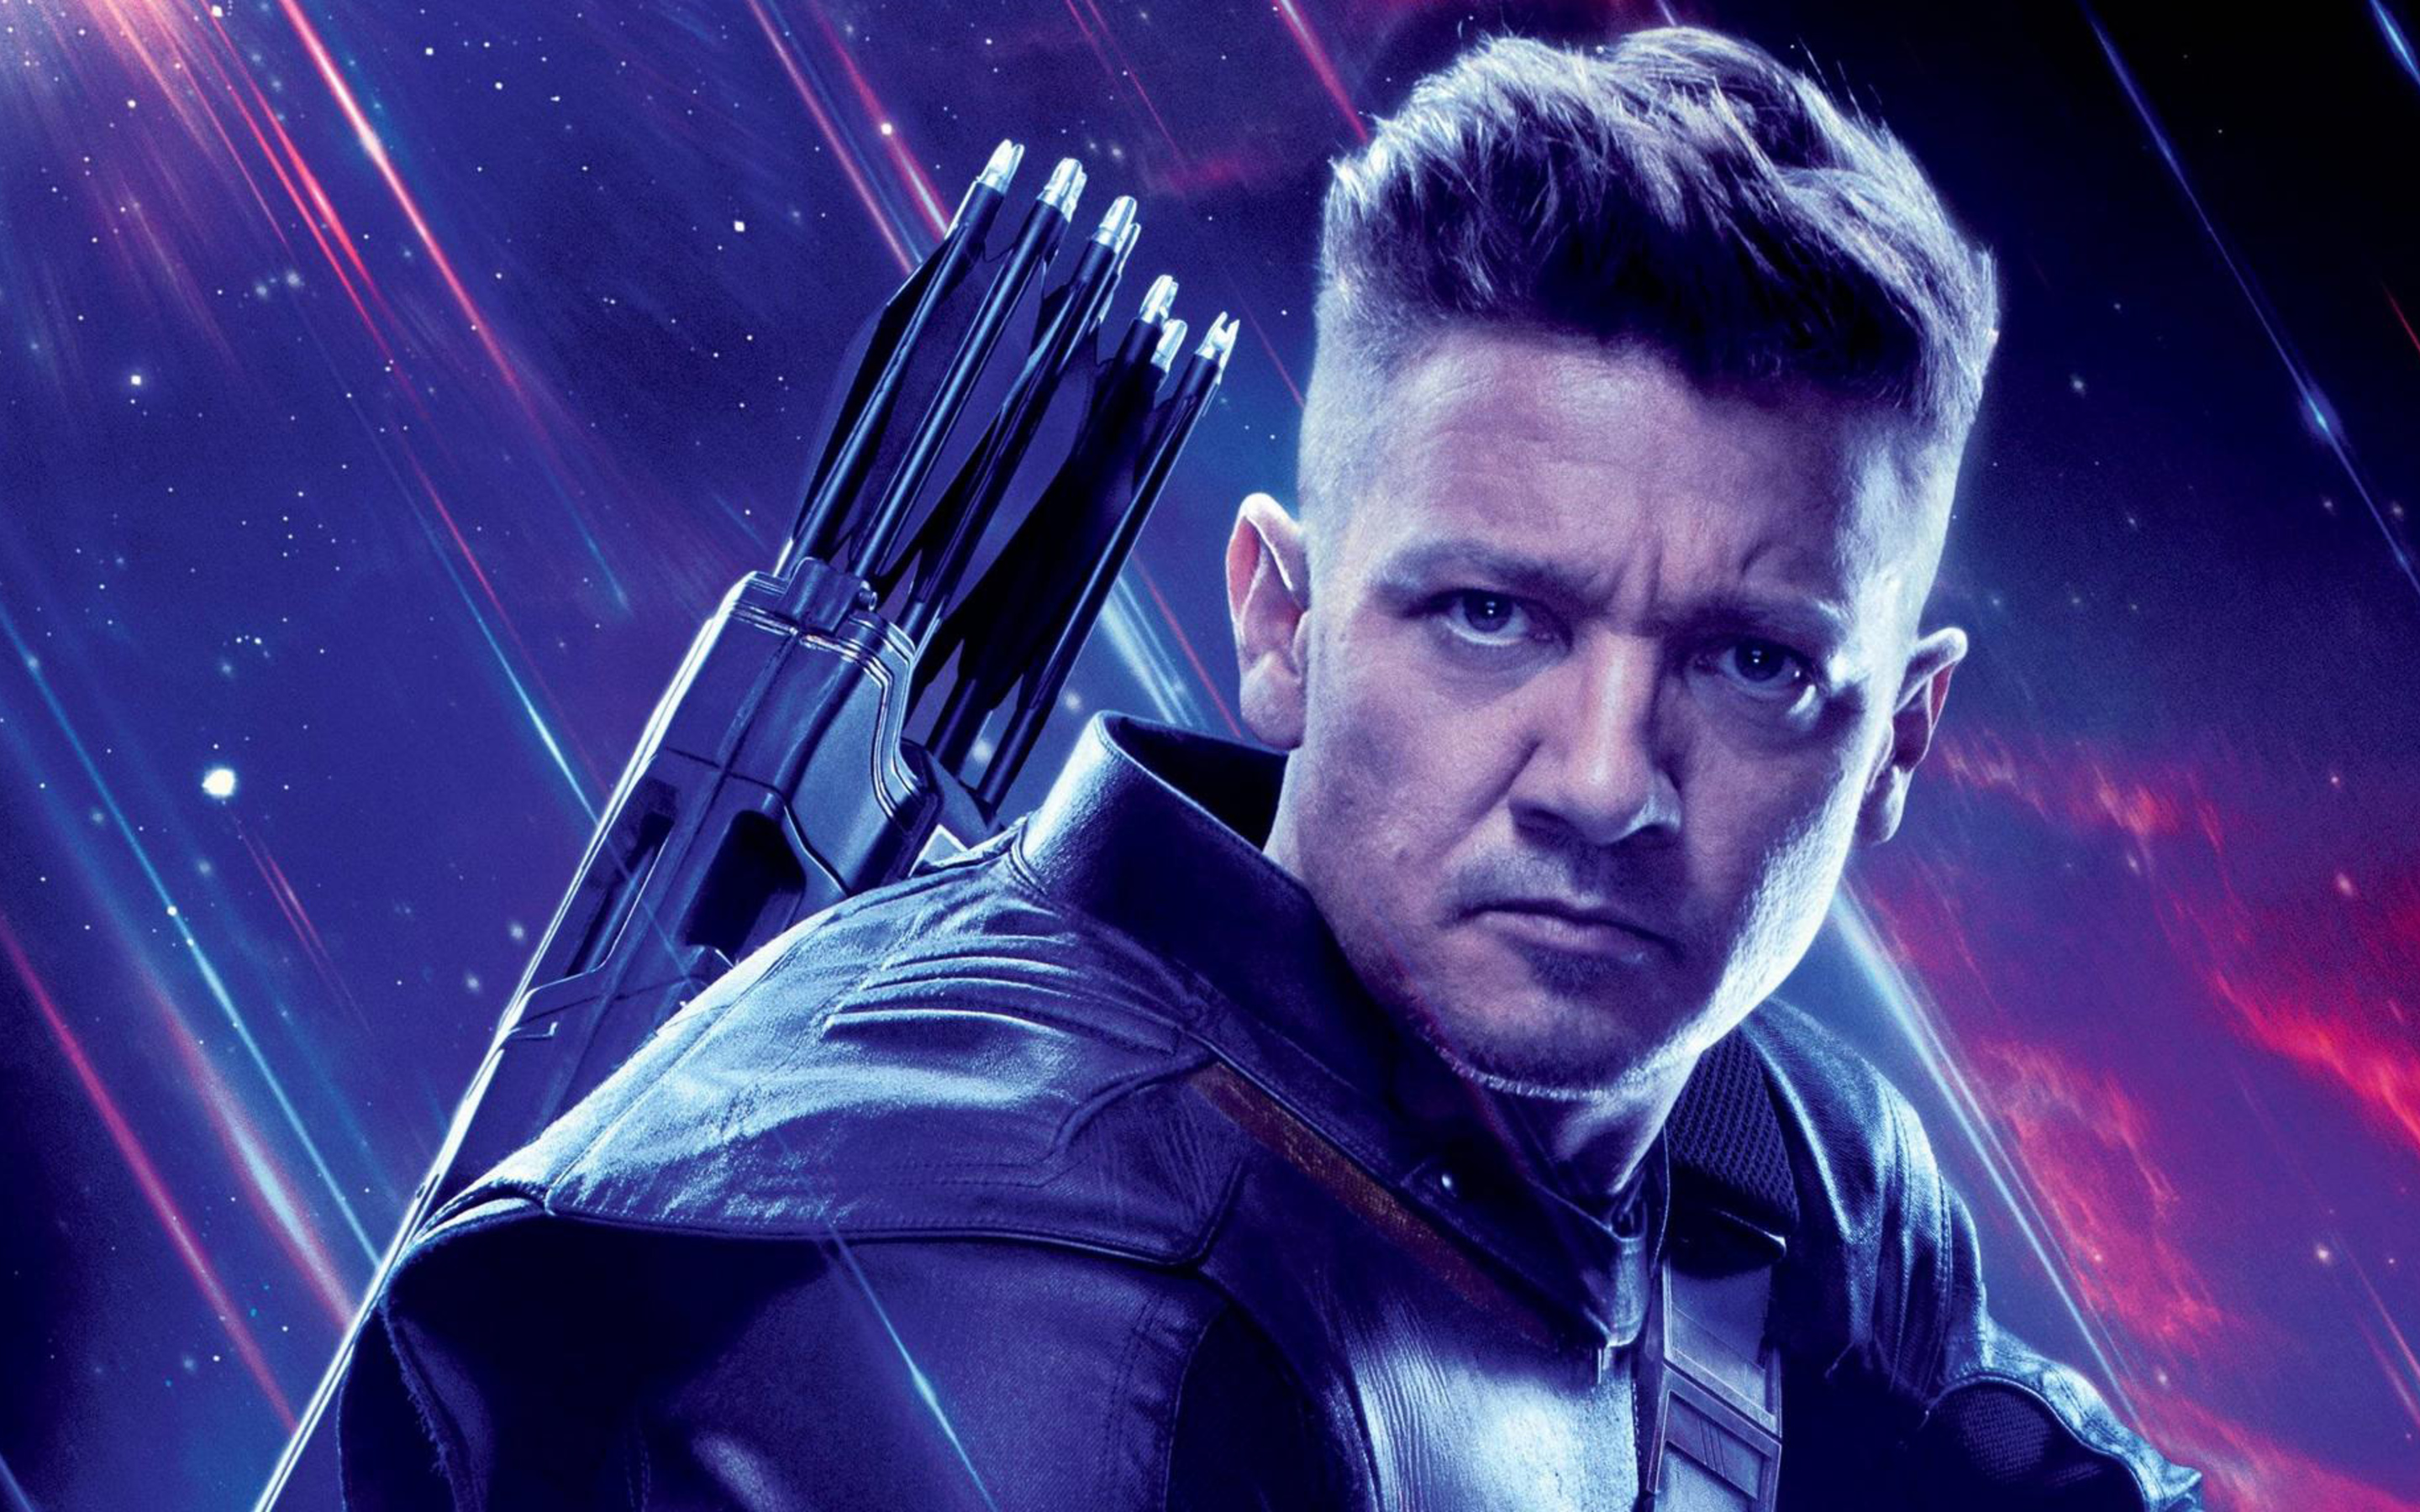 Hawkeye series under way at Disney+